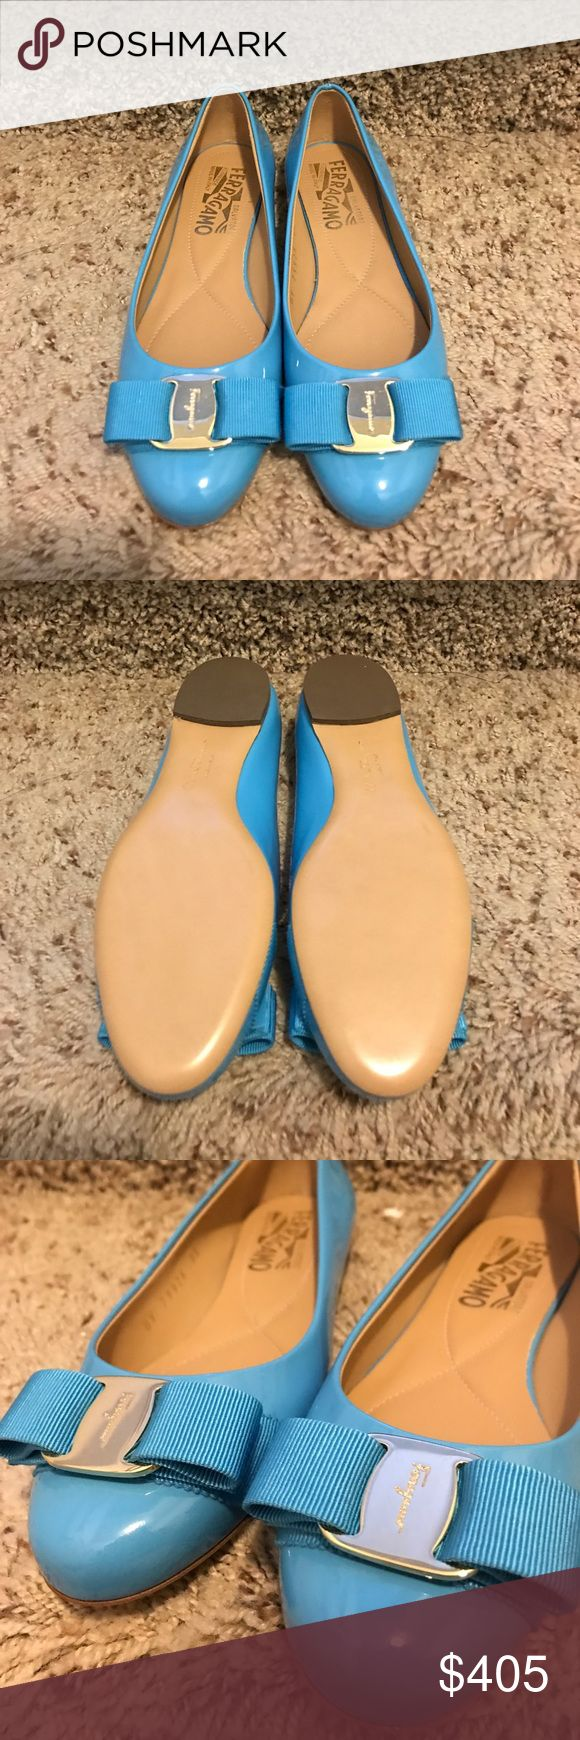 Brand new Ferragamo Vara flats bright blue Never worn as you can see from the shoe bottoms. Very cute blue that you might not be able to find somewhere else Salvatore Ferragamo Shoes Flats & Loafers